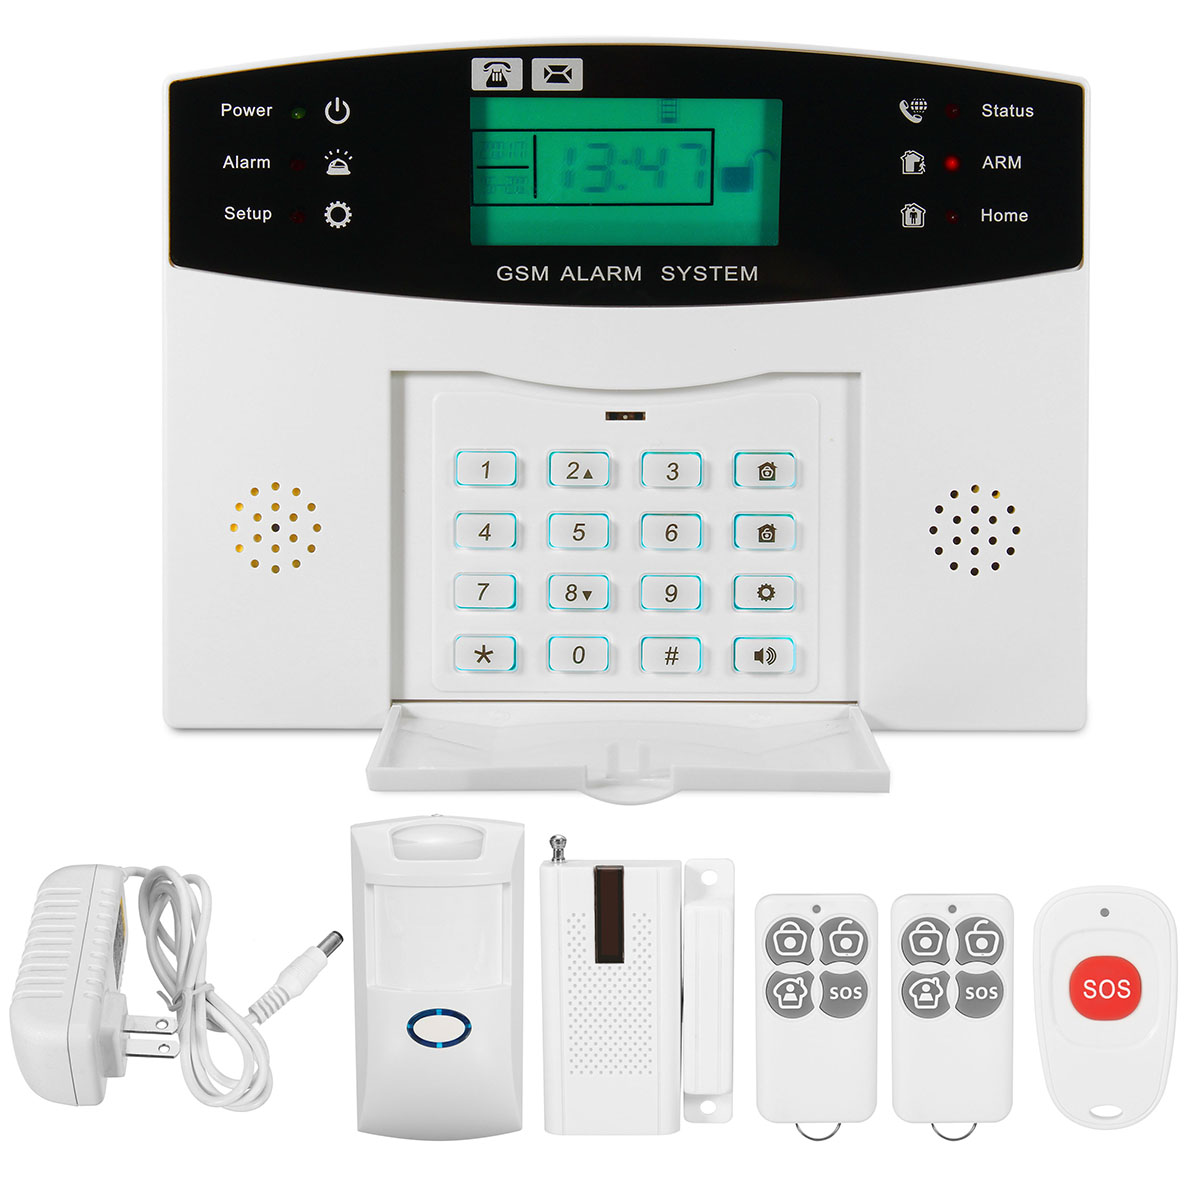 NEW LCD Security Wireless GSM Autodial Home House Burglar Intruder Fire Alarm System For Home Security new safurance wireless lcd gsm sms autodial alarm security home house burglar intruder system home safety alarm mainframe kits